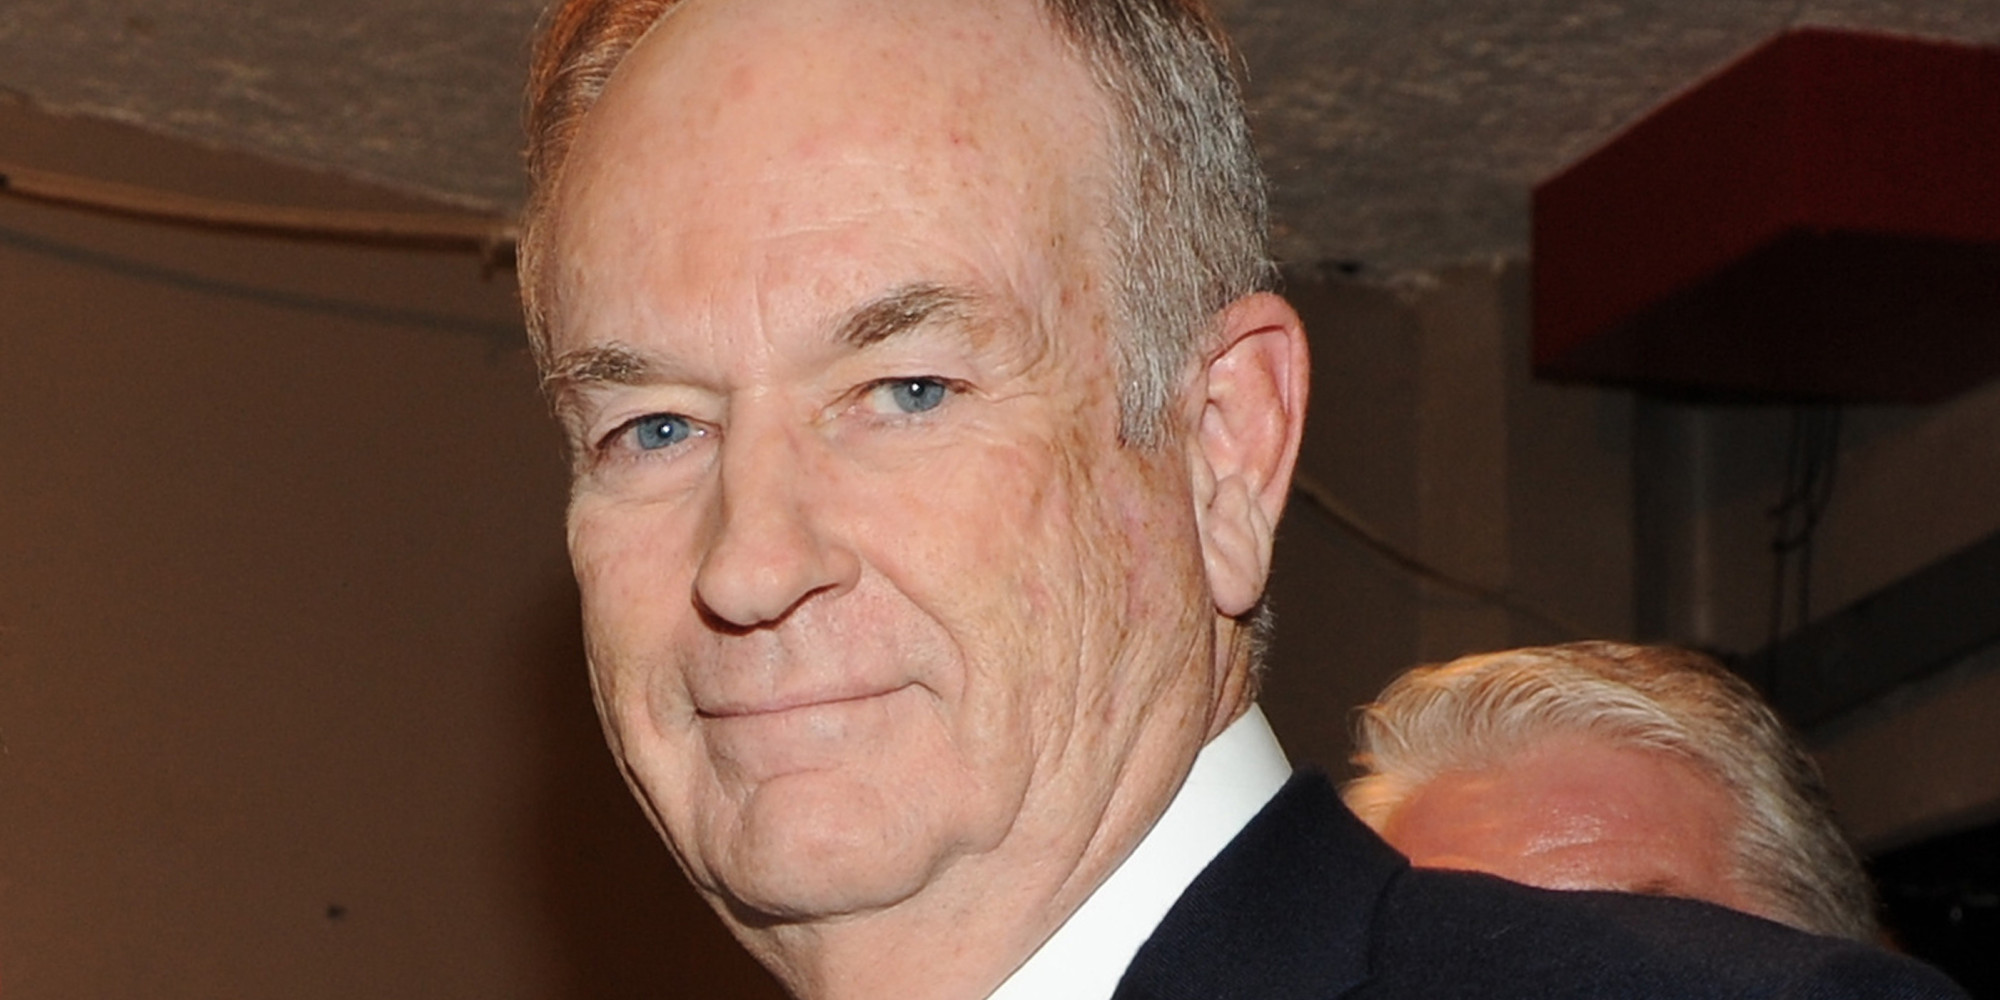 mother jones urges bill oreilly to apologize for violent